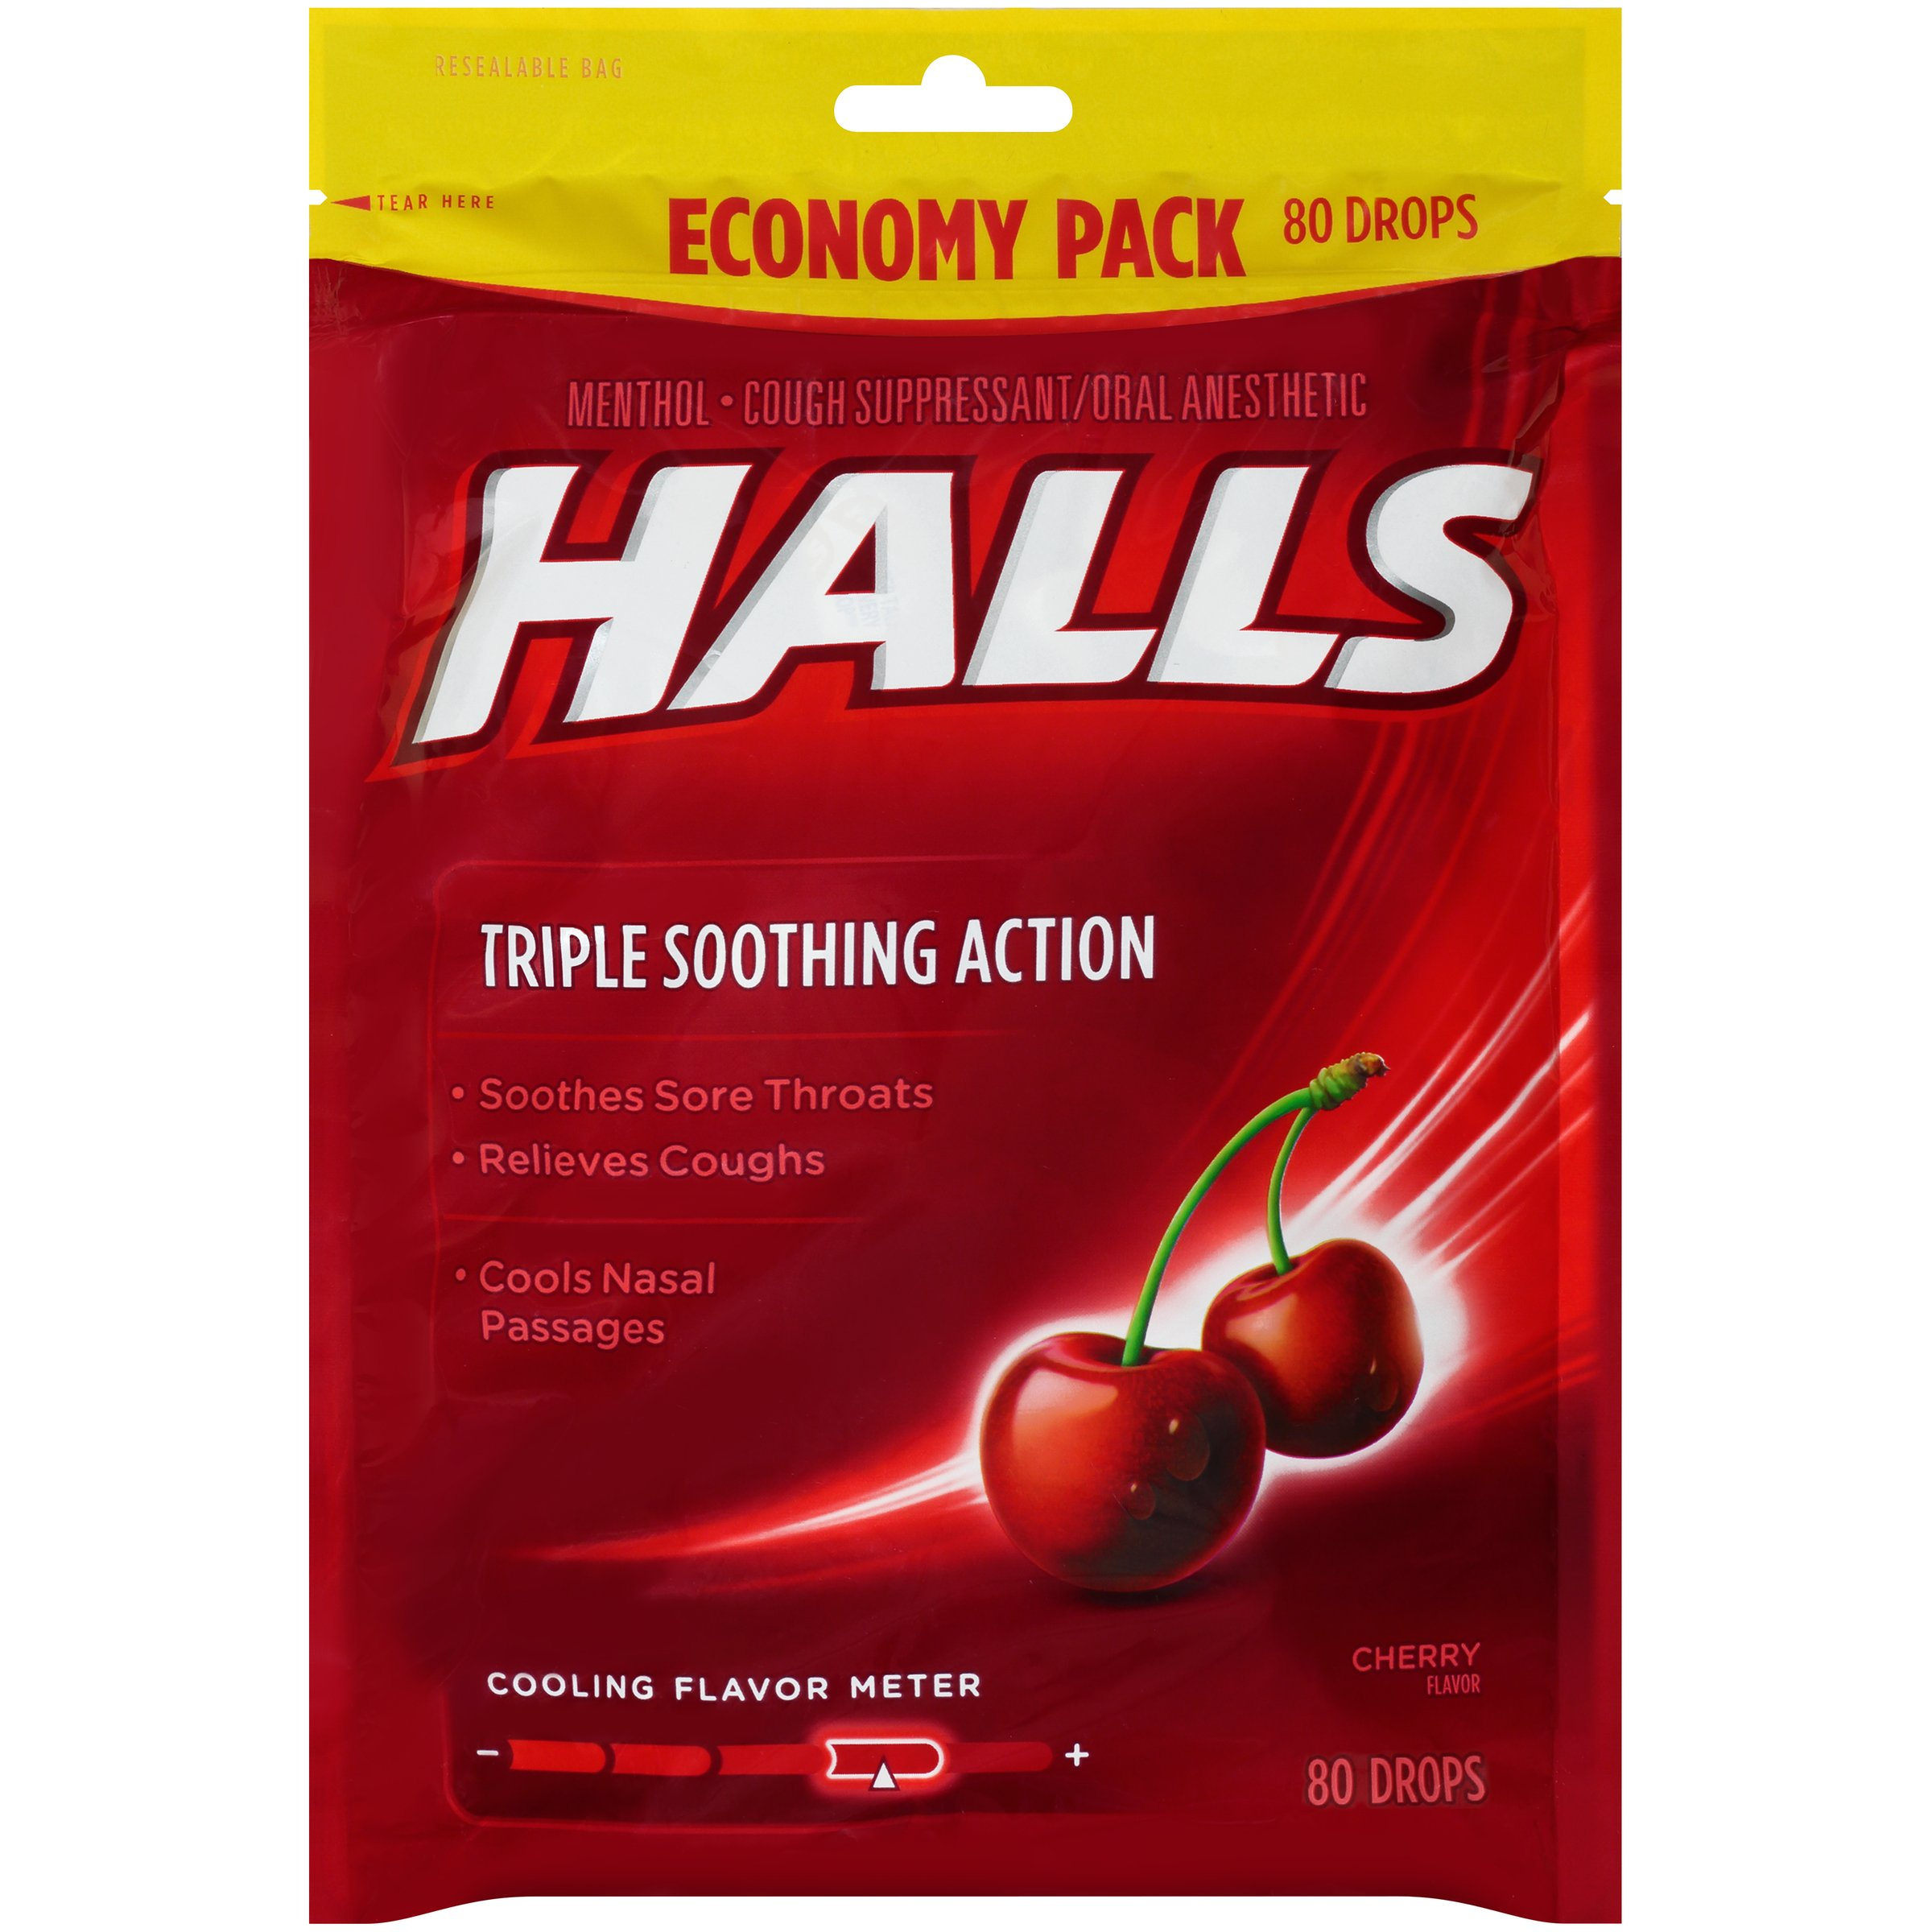 HALLS Cough Drops, (Cherry, 80 Drops, 12-Pack)